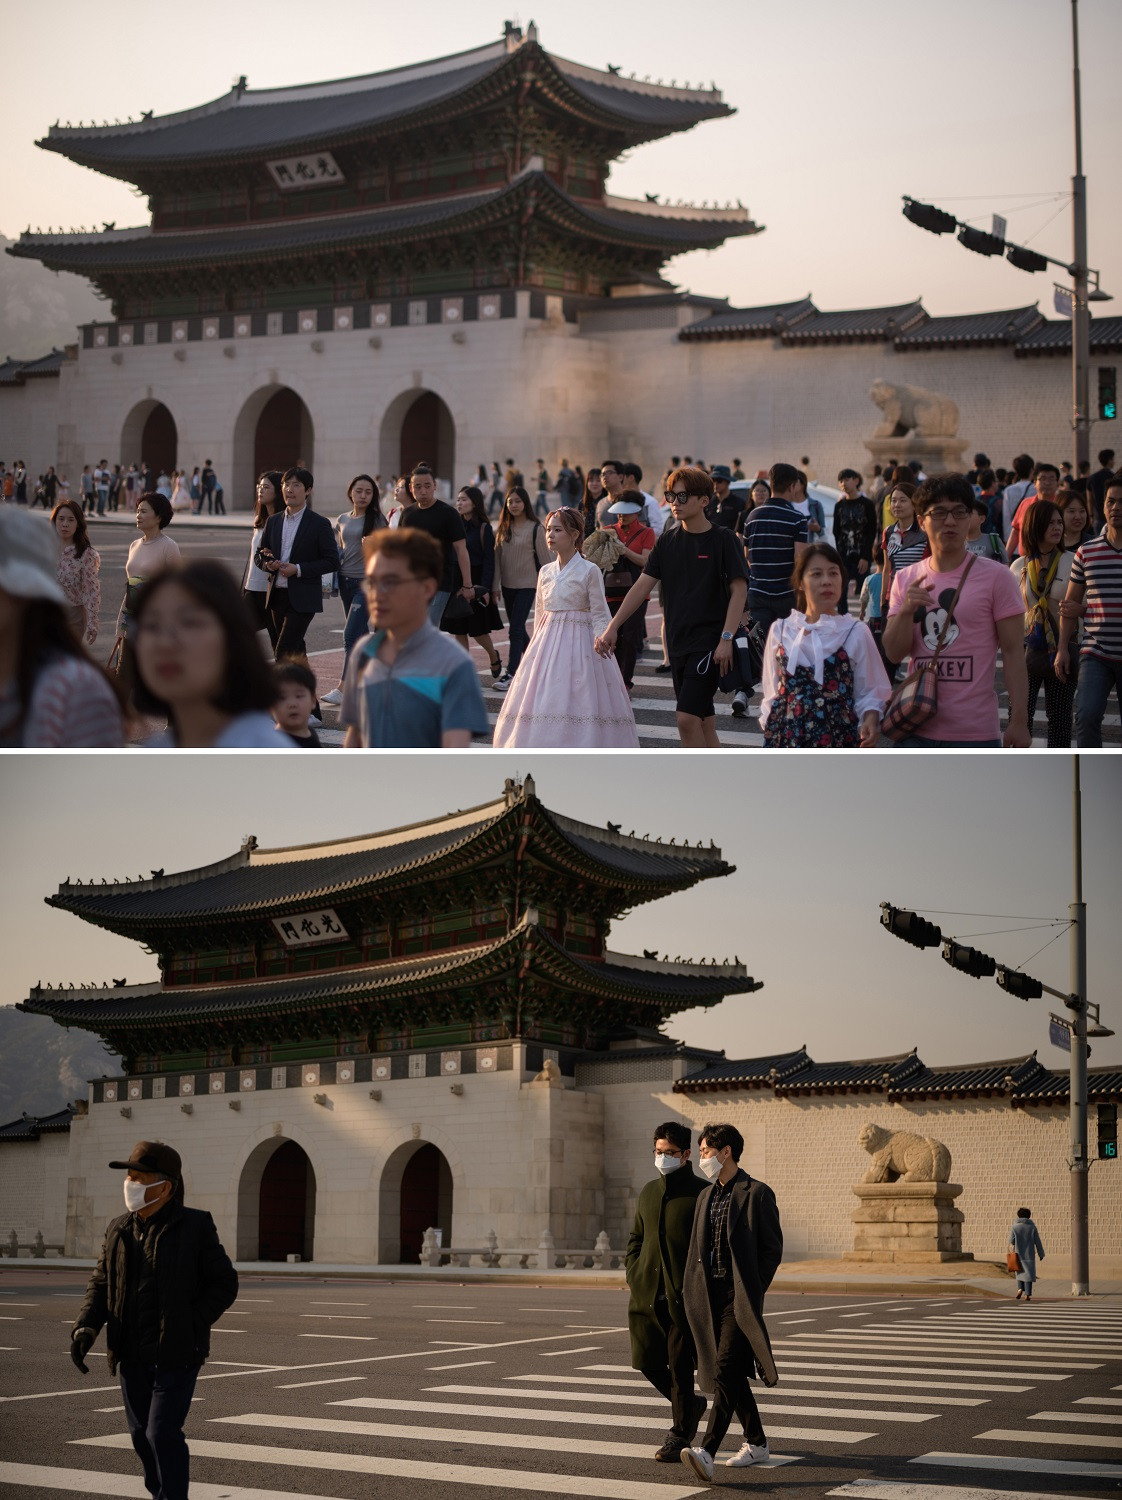 This combination photo created on March 6, 2020 shows pedestrians crossing a street outside the Gyeongbokgung palace in Seoul on May 3, 2017 (top) and on March 6, 2020.